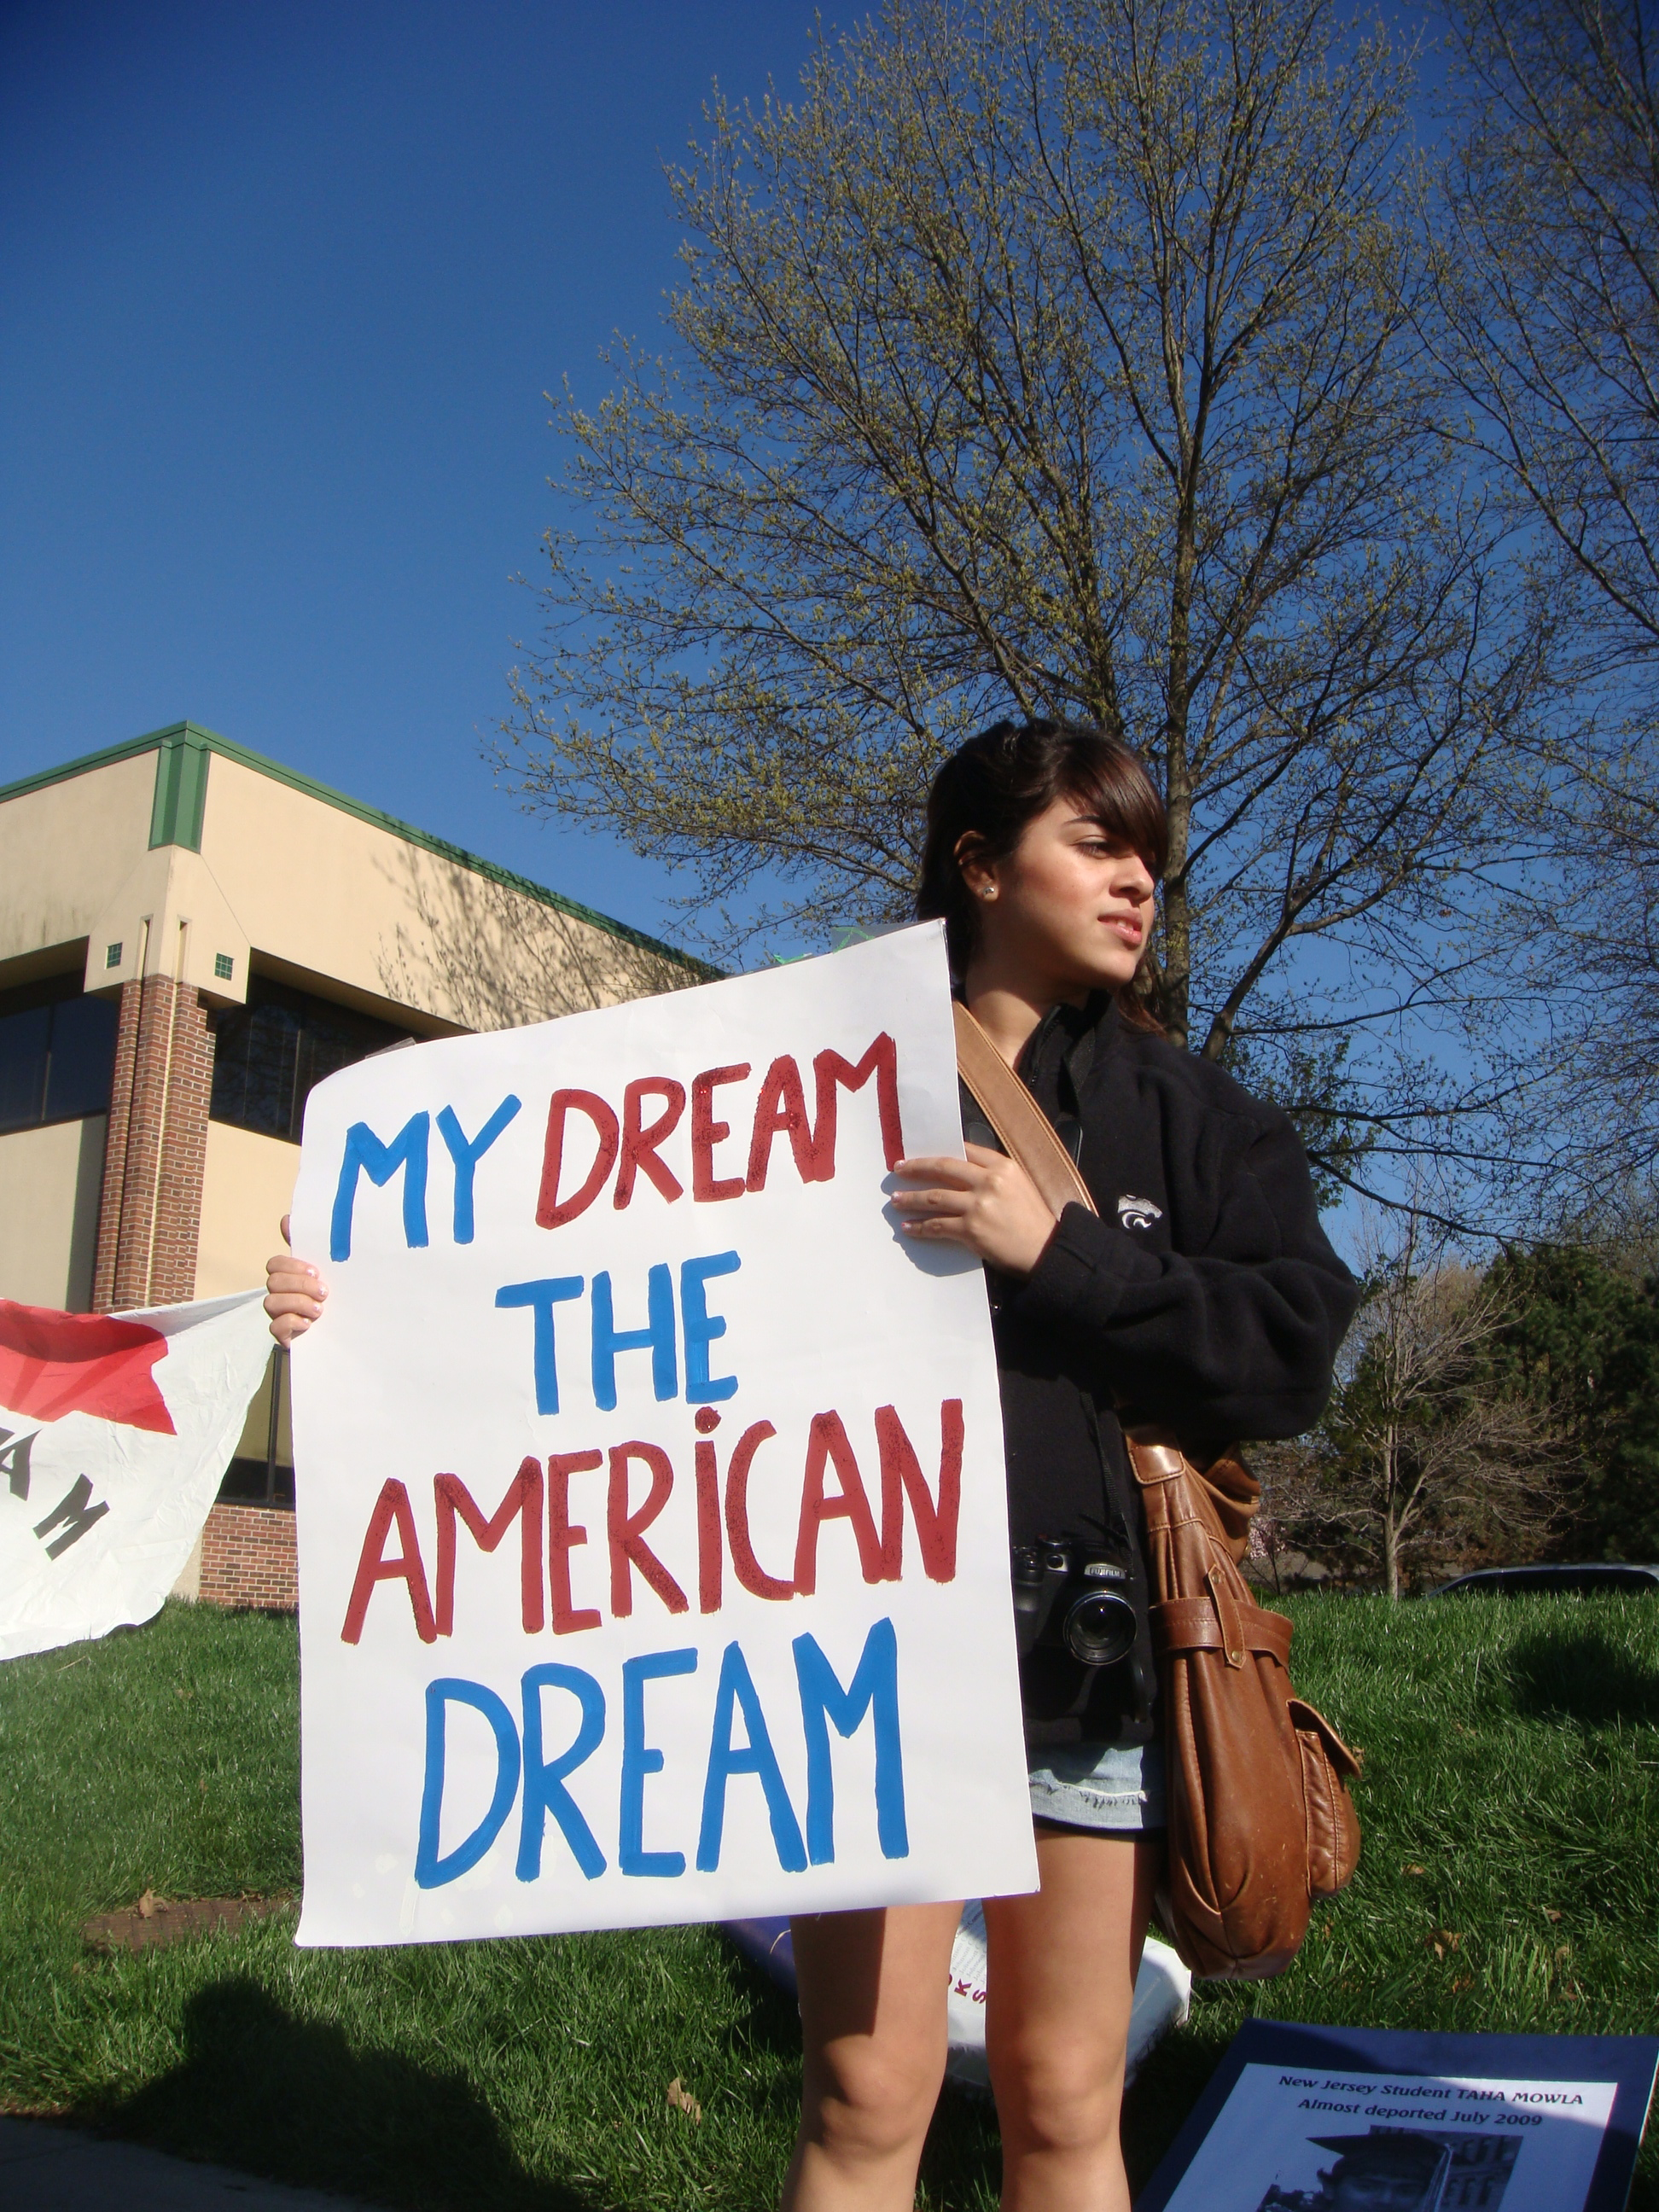 American Dream of Immigrants